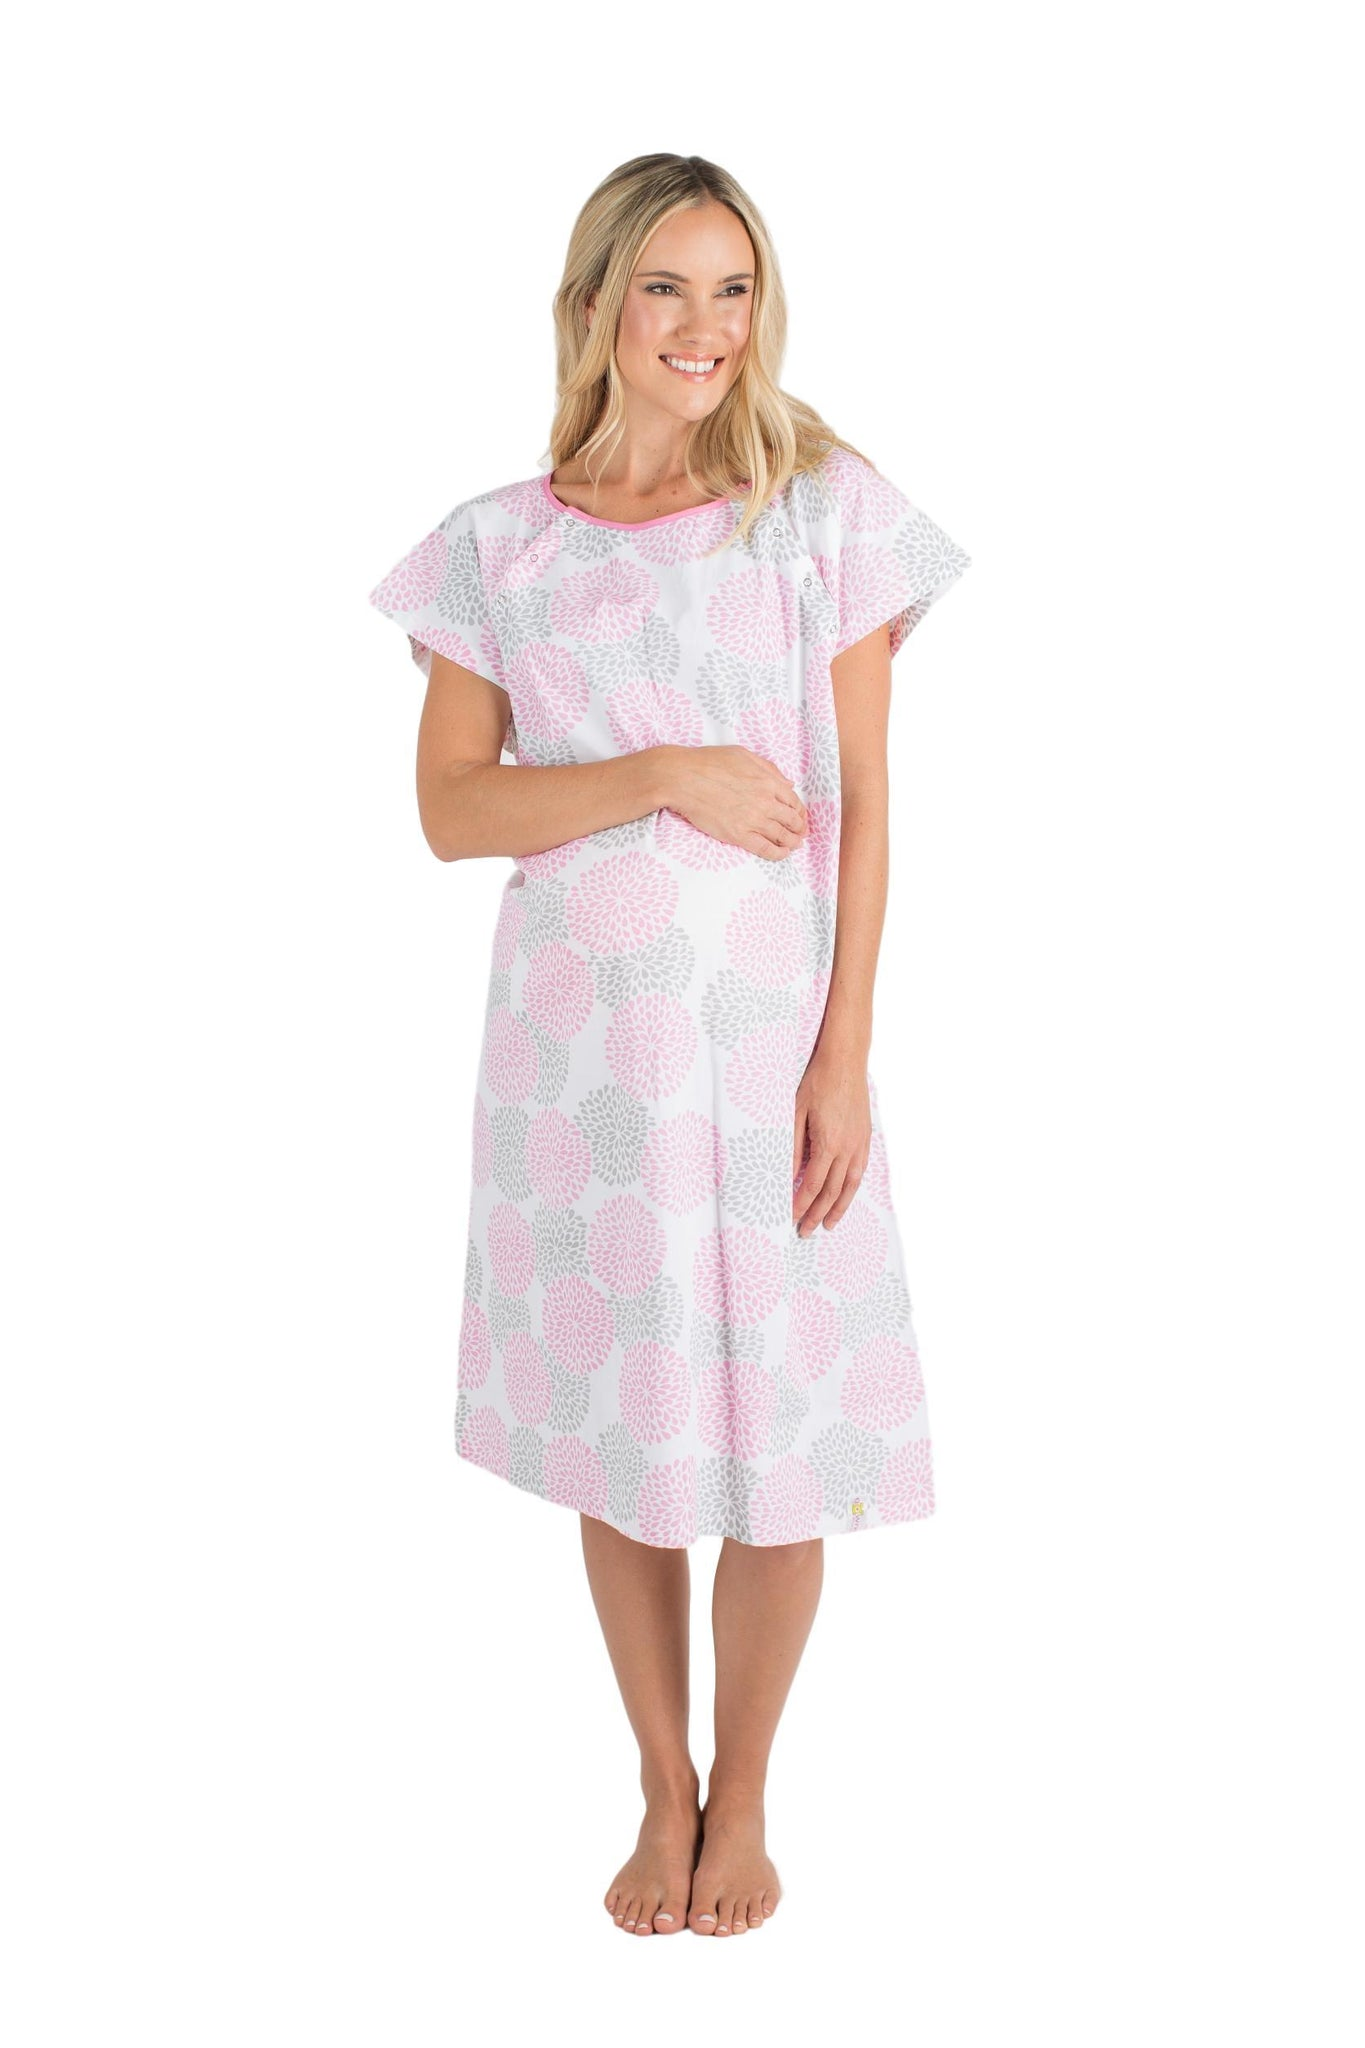 Lilly Gownies: Designer Hospital Maternity Gowns Pink Grey Floral